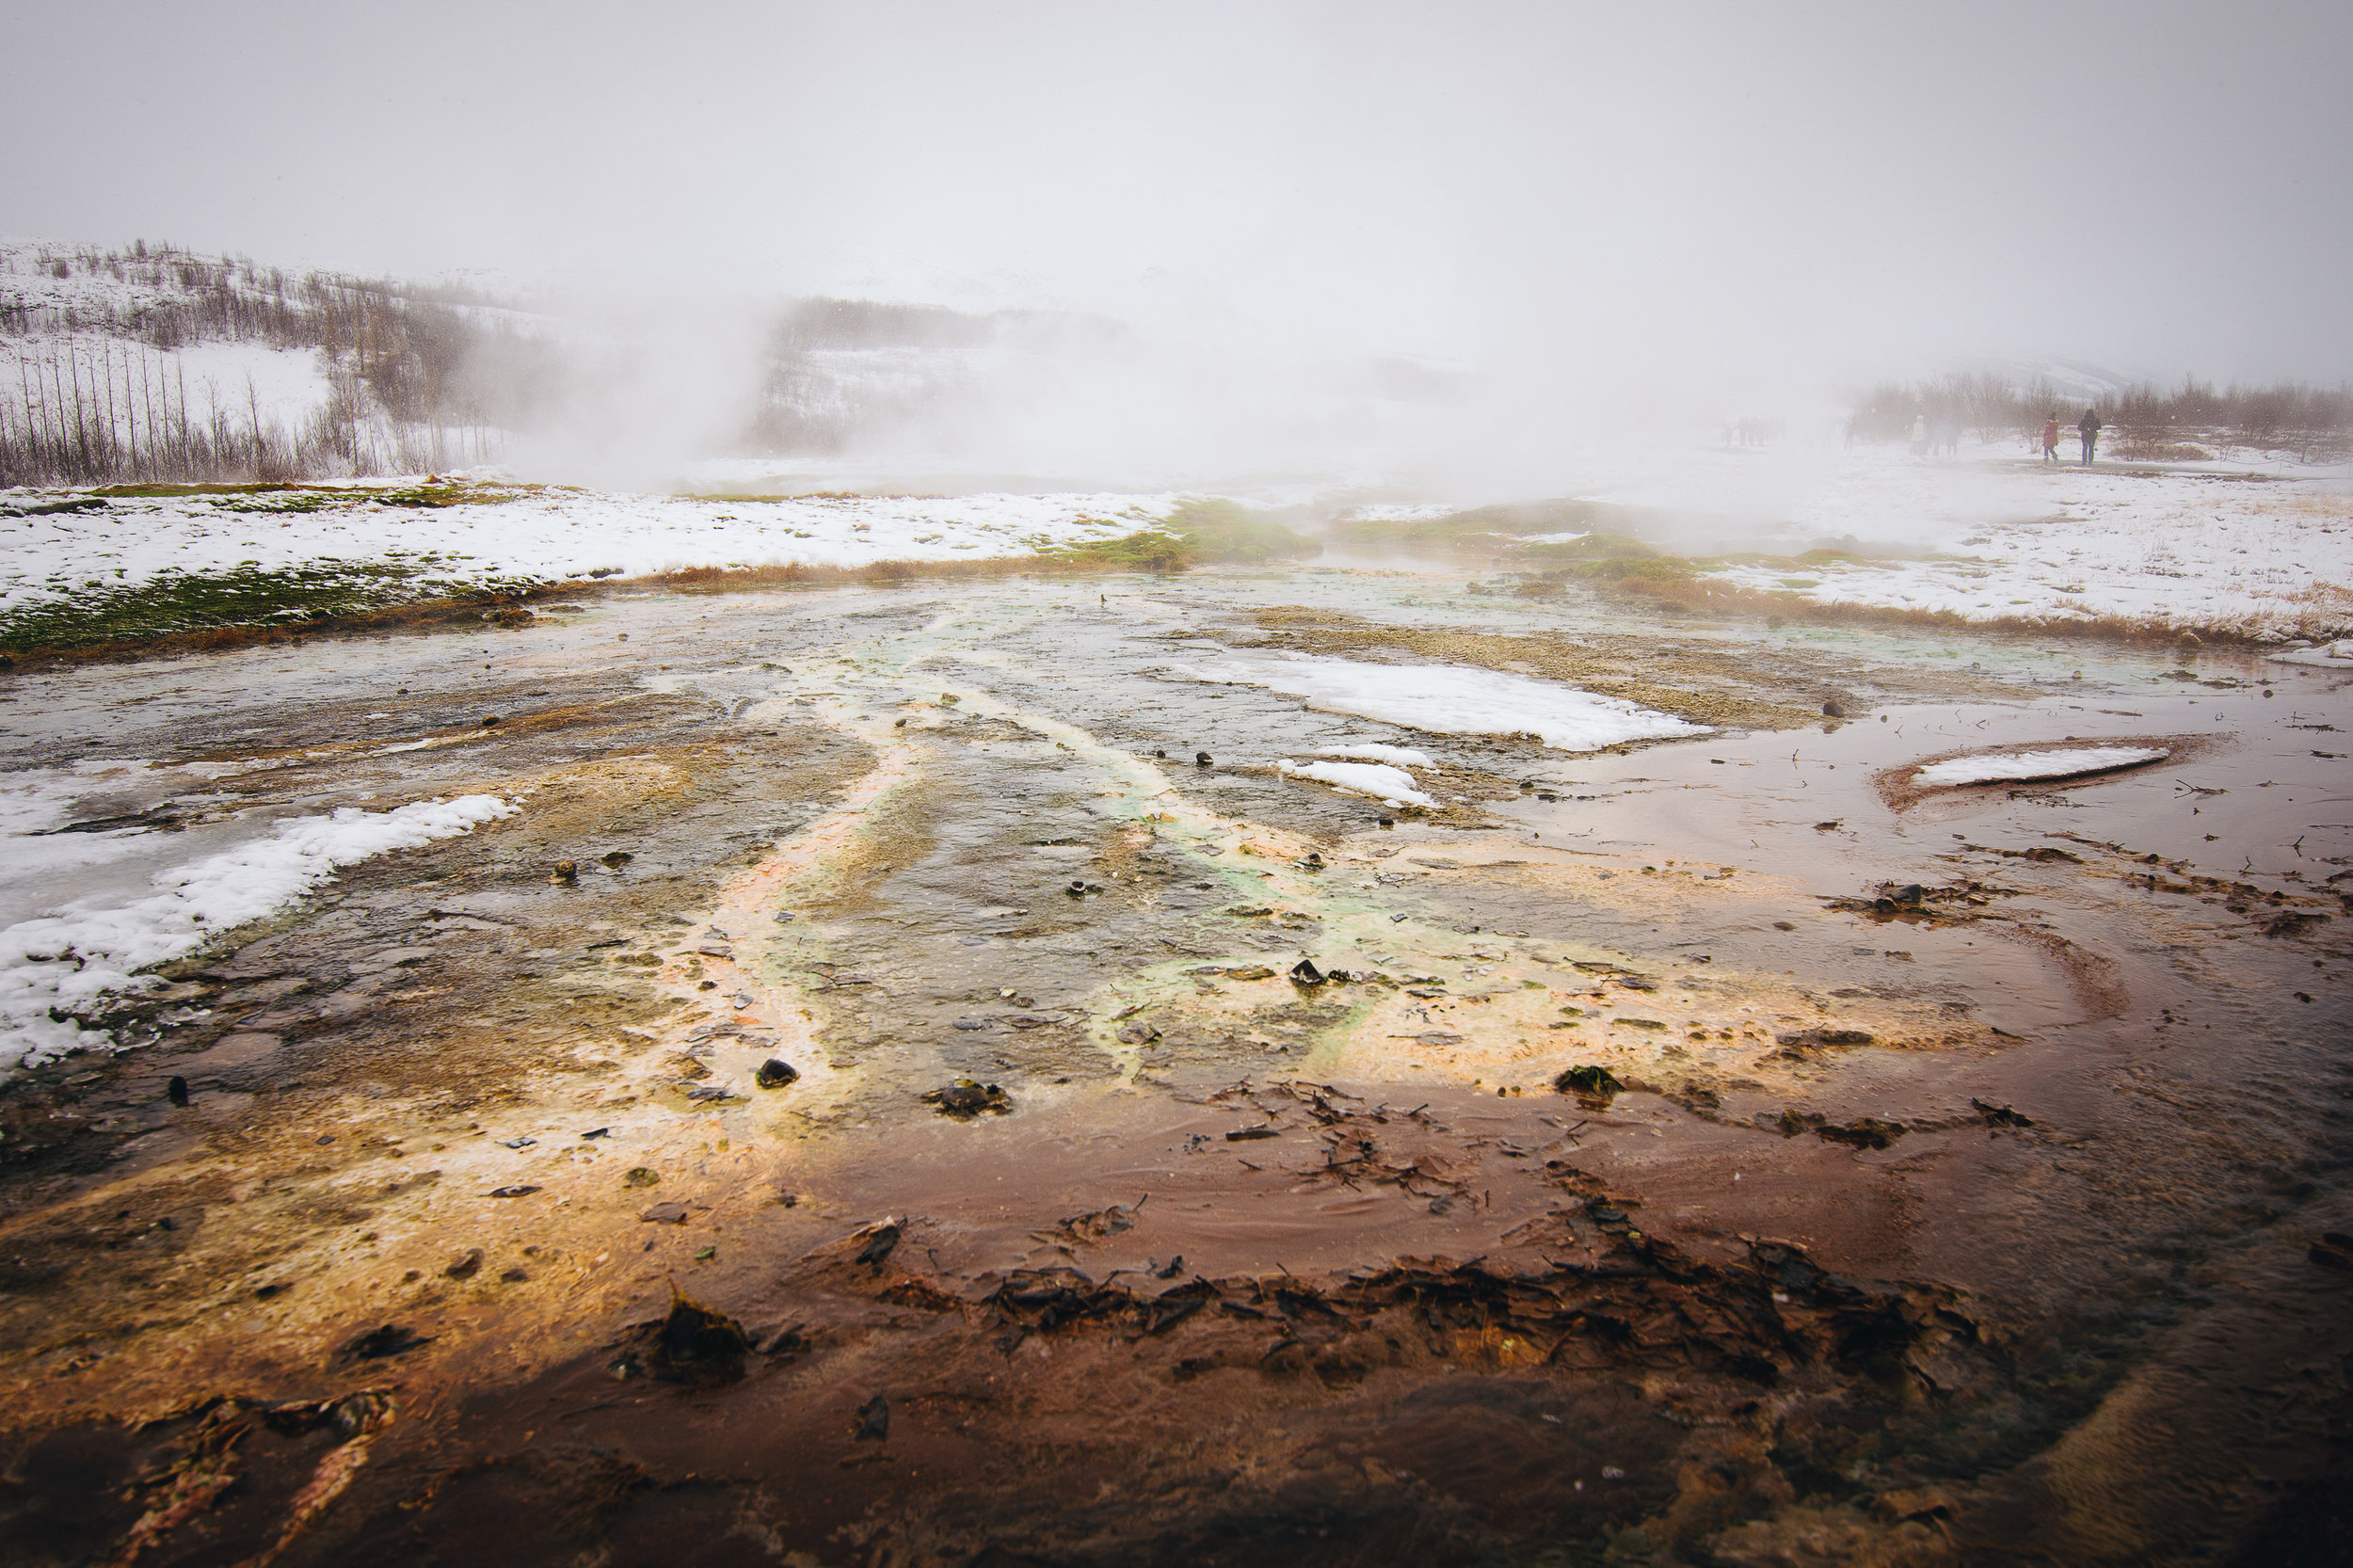 Bacterial mats in the geysers.